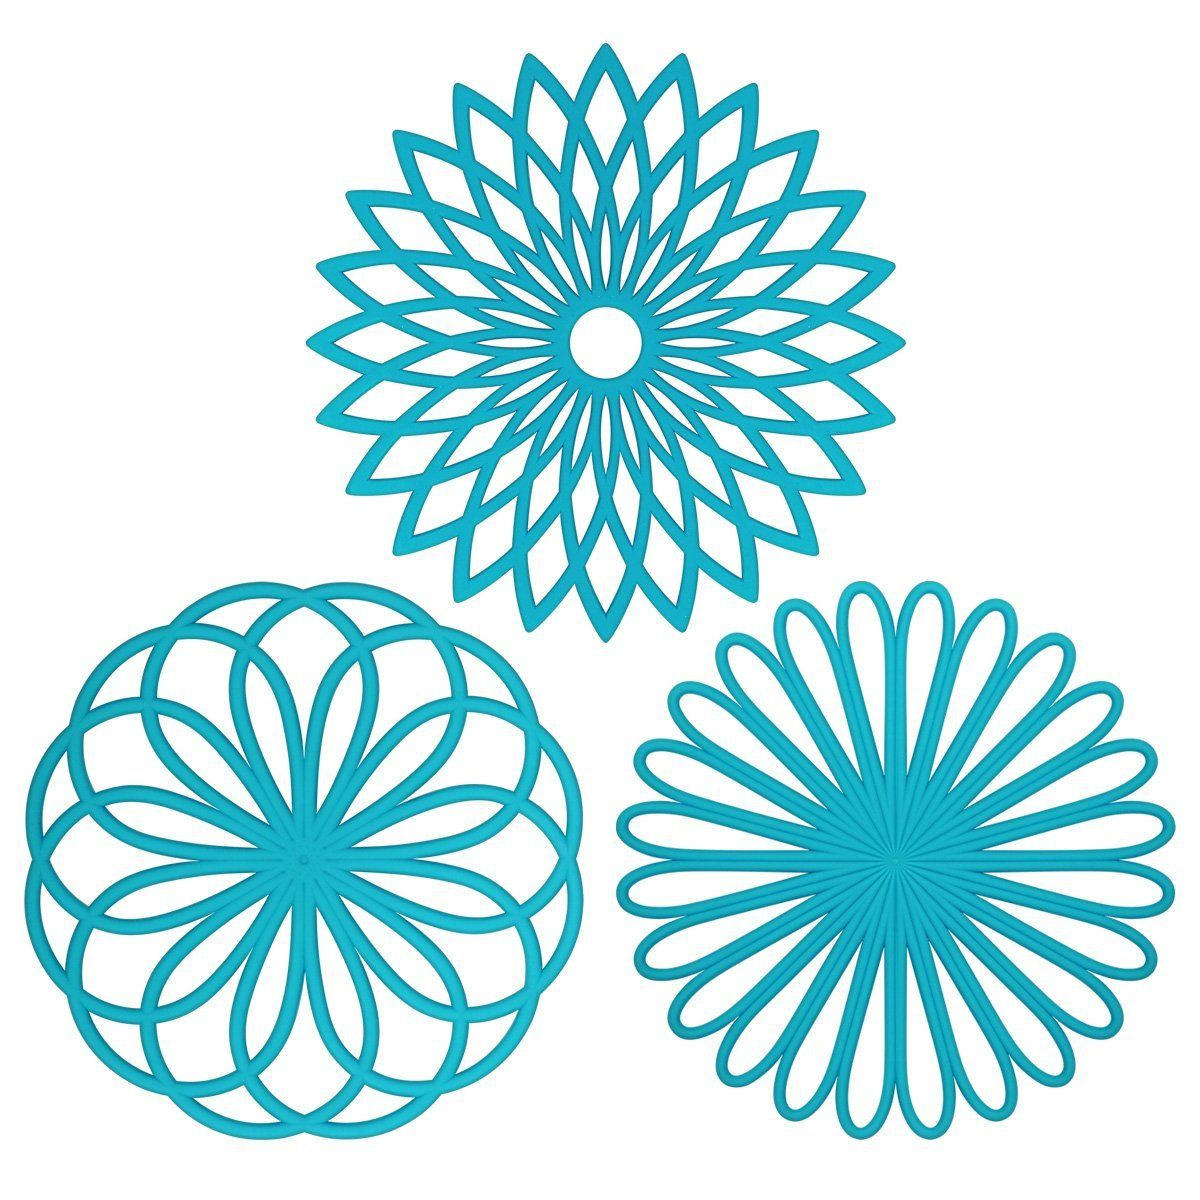 FANTM Silicone Multi Use Flower Trivet Mat(set Of 3 Pack) Premium Quality  Insulated Flexible Durable Non Slip Hot Pads And Coasters Cup Blue: Kitchen  U0026 ...